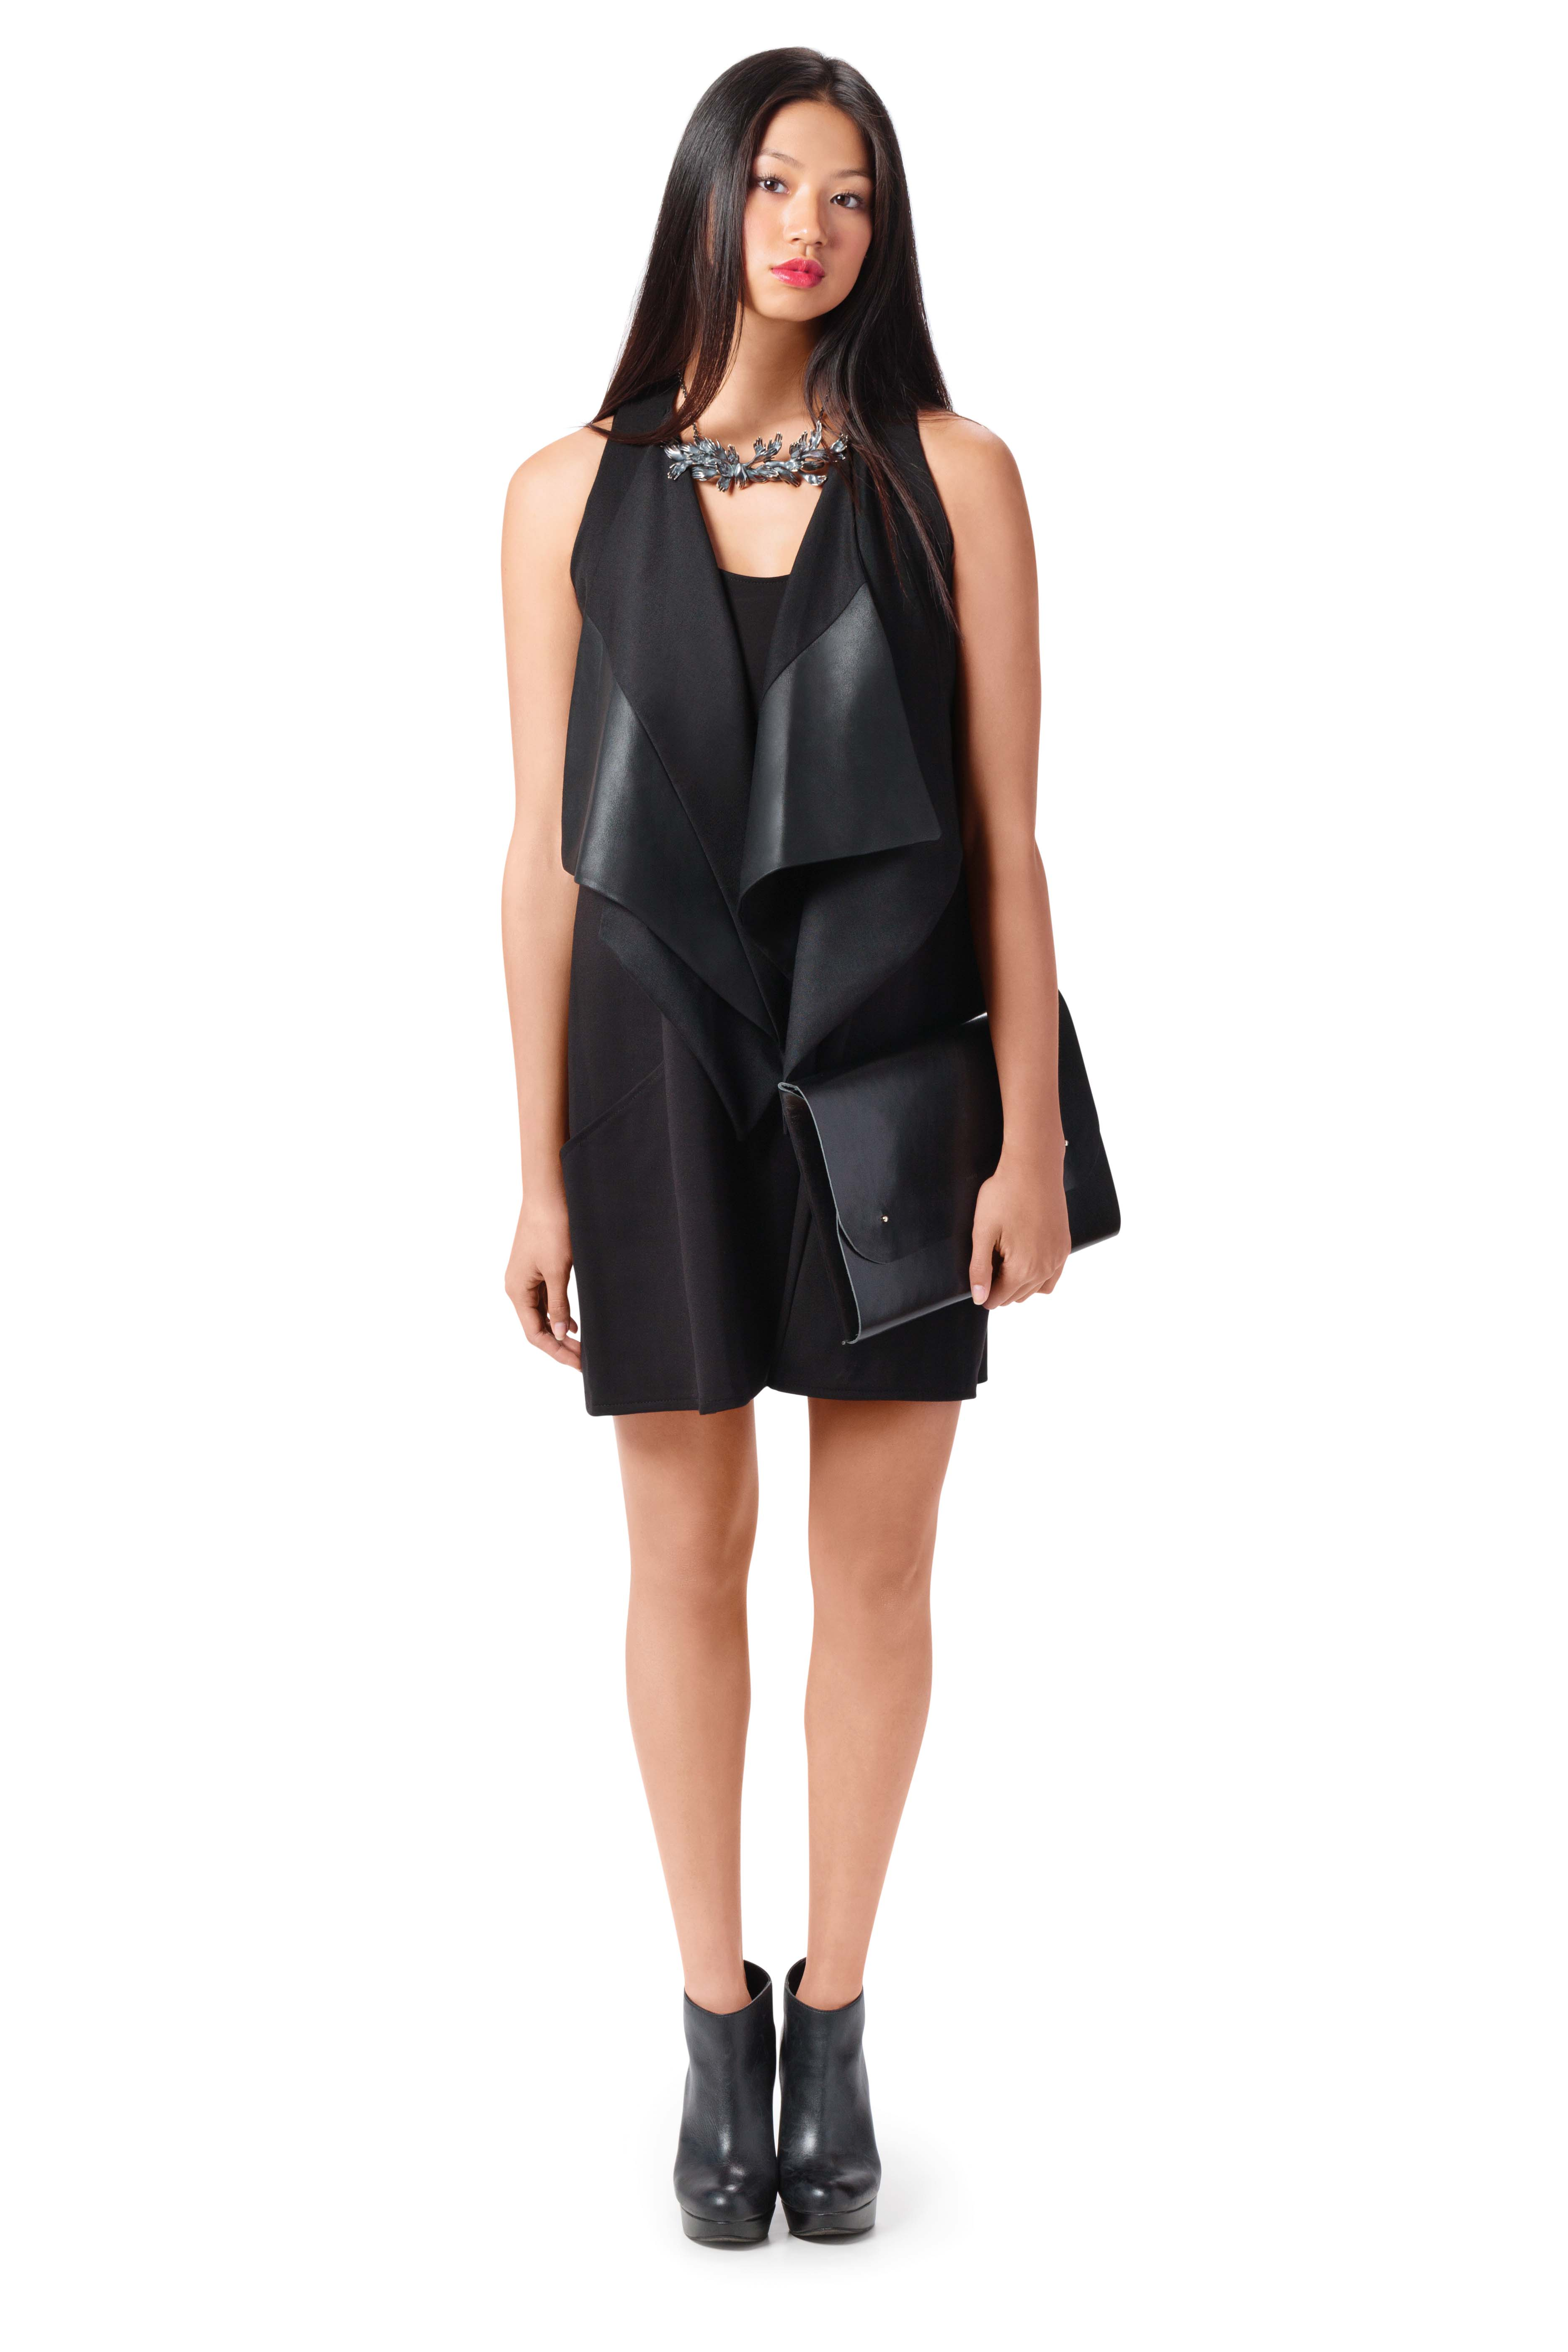 Wool vest with leather $380 and jersey dress $195 by Elisa C-Rossow, Elisa C-Rossow